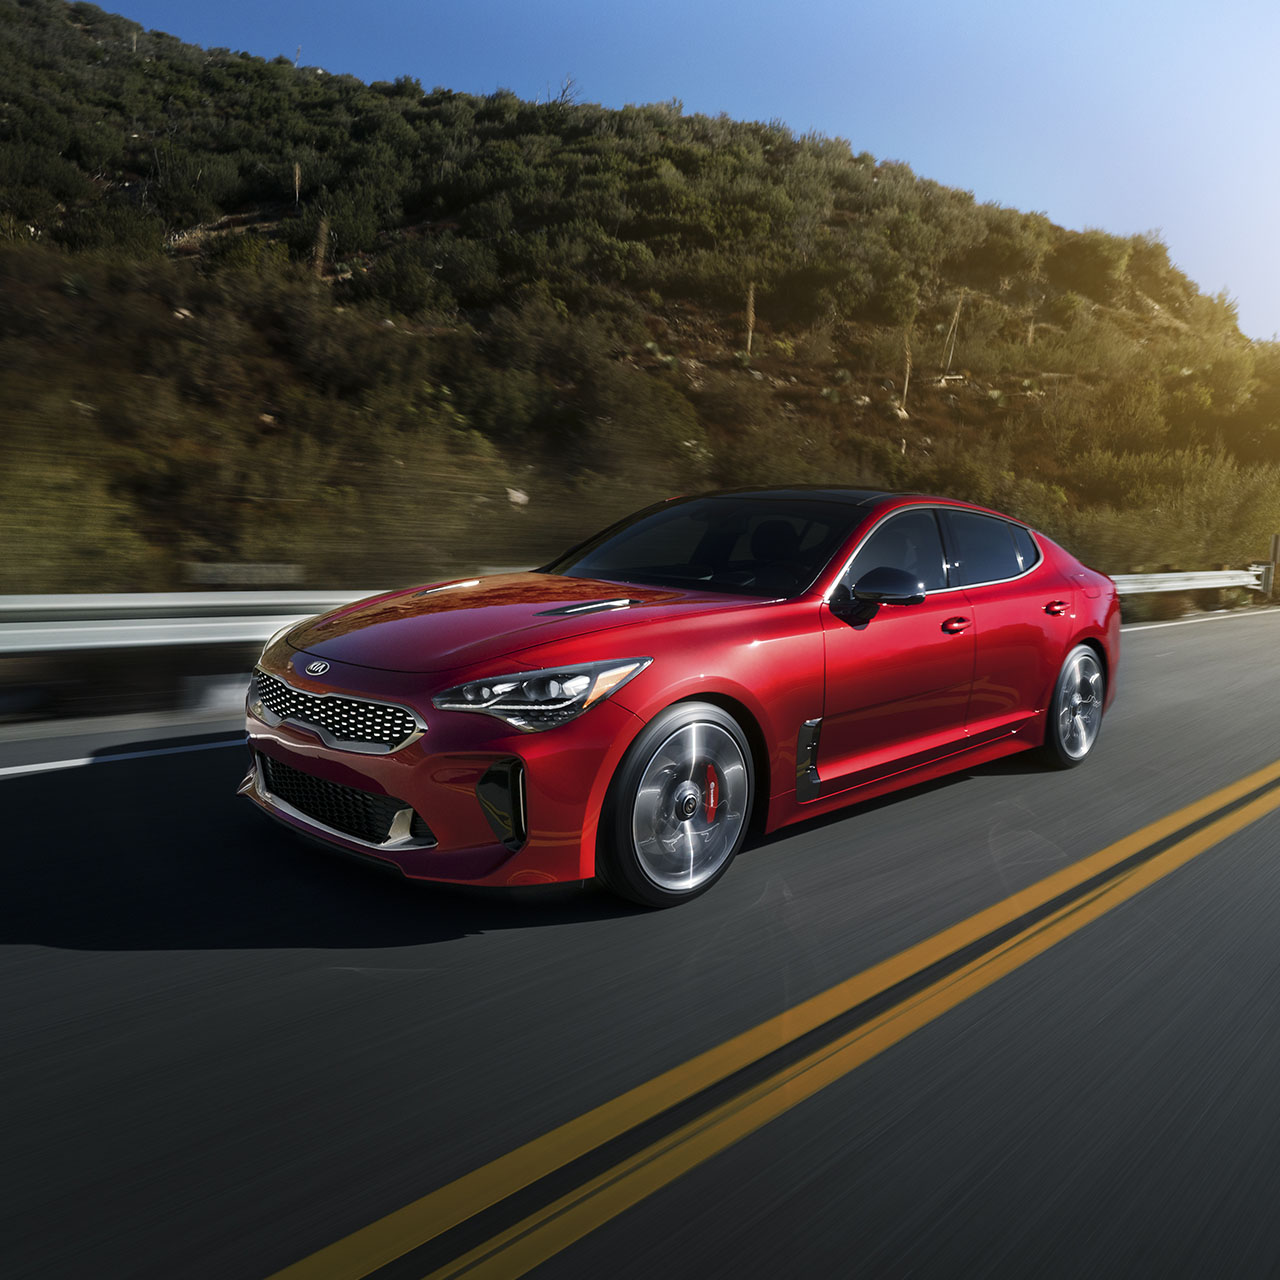 2018 Kia Stinger for Sale in Houston, TX